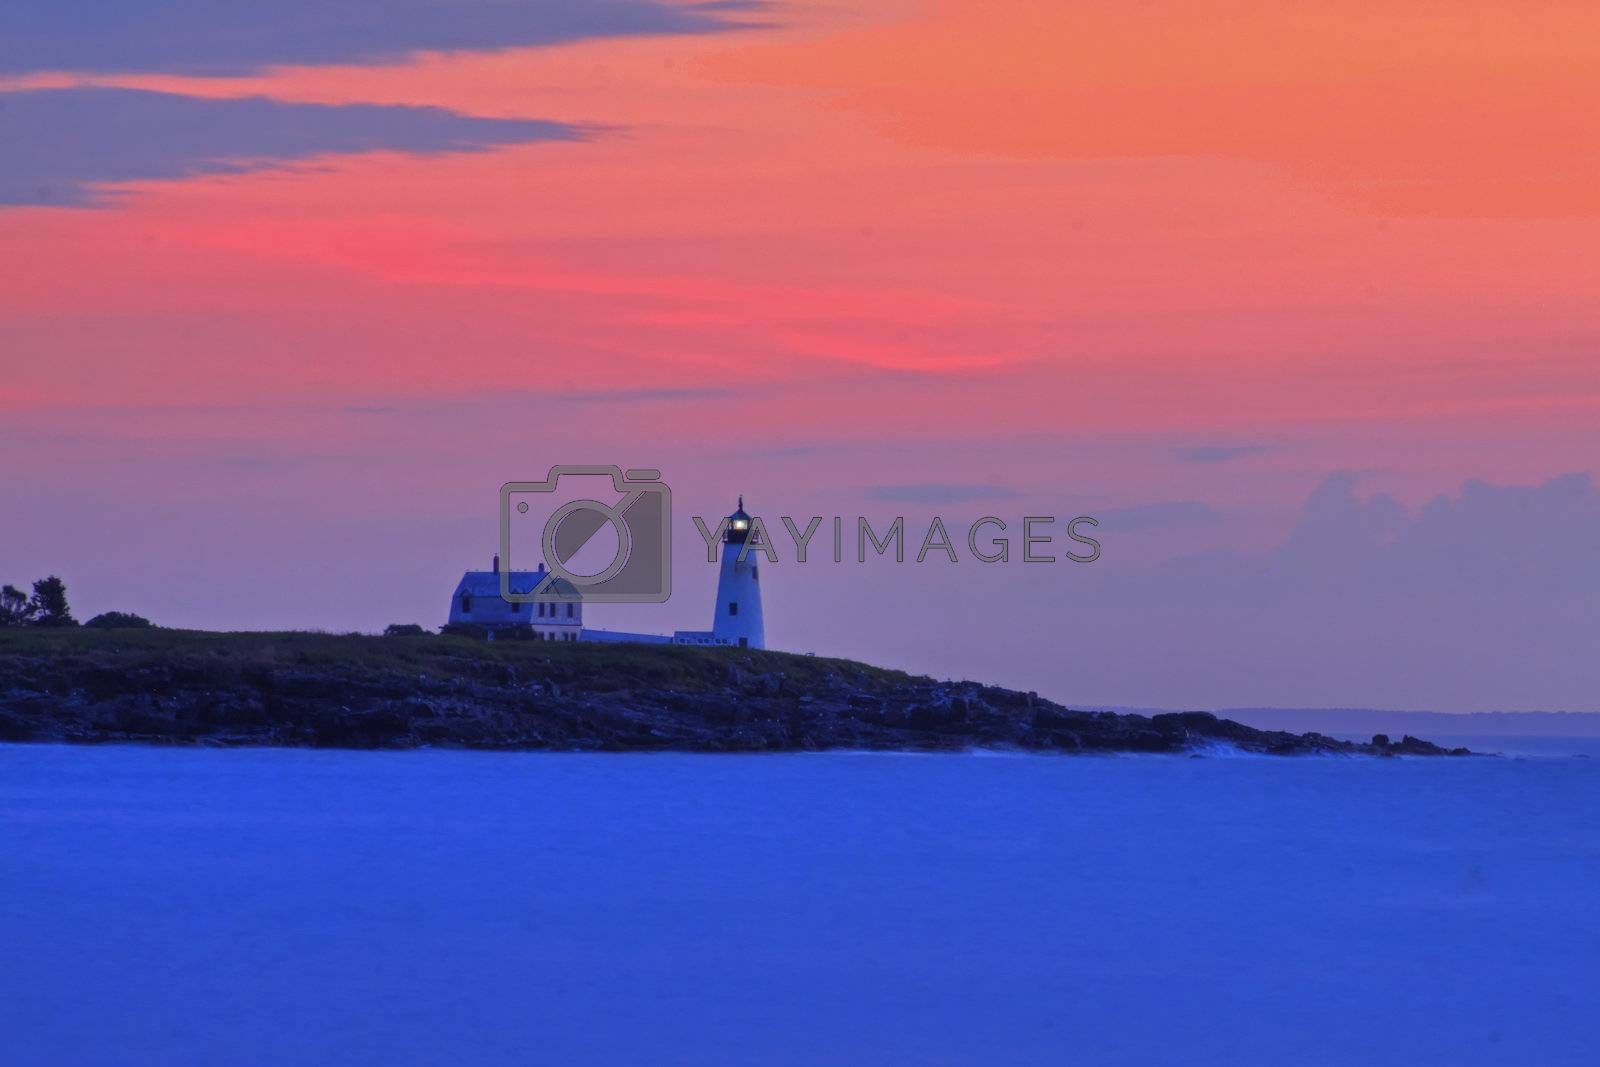 Wood Island Lighthouse at sunrise from East Point Sanctuary